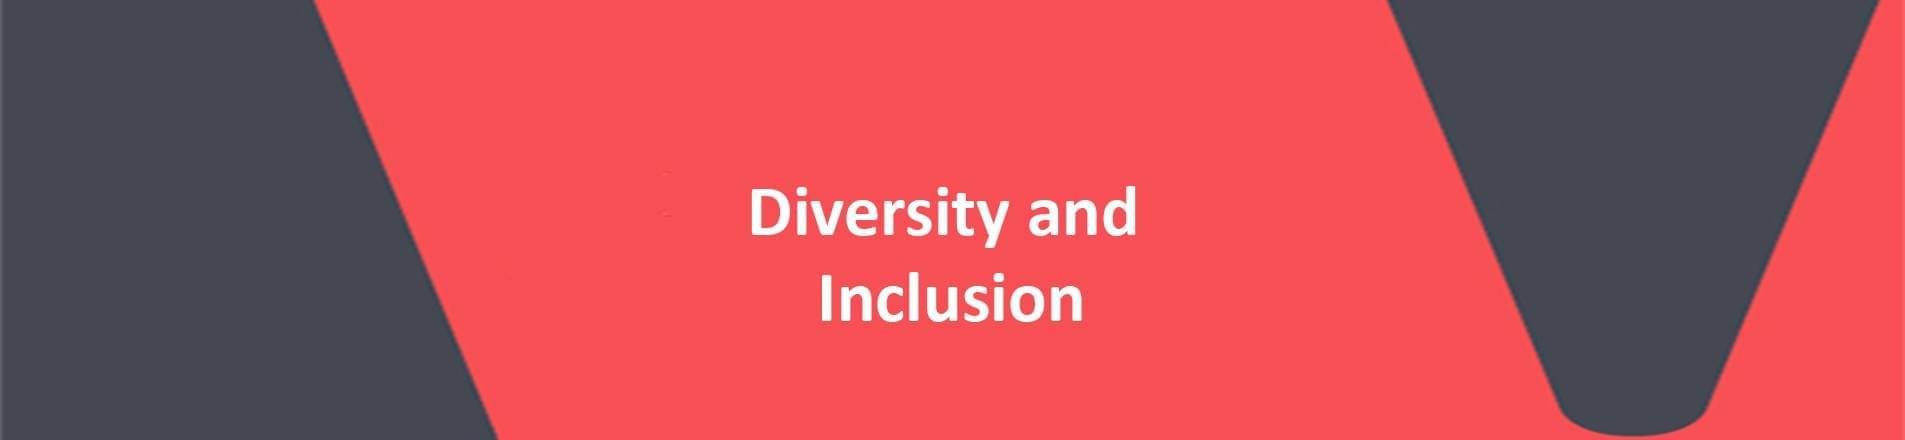 """text of """"Diversity and Inclusion"""""""